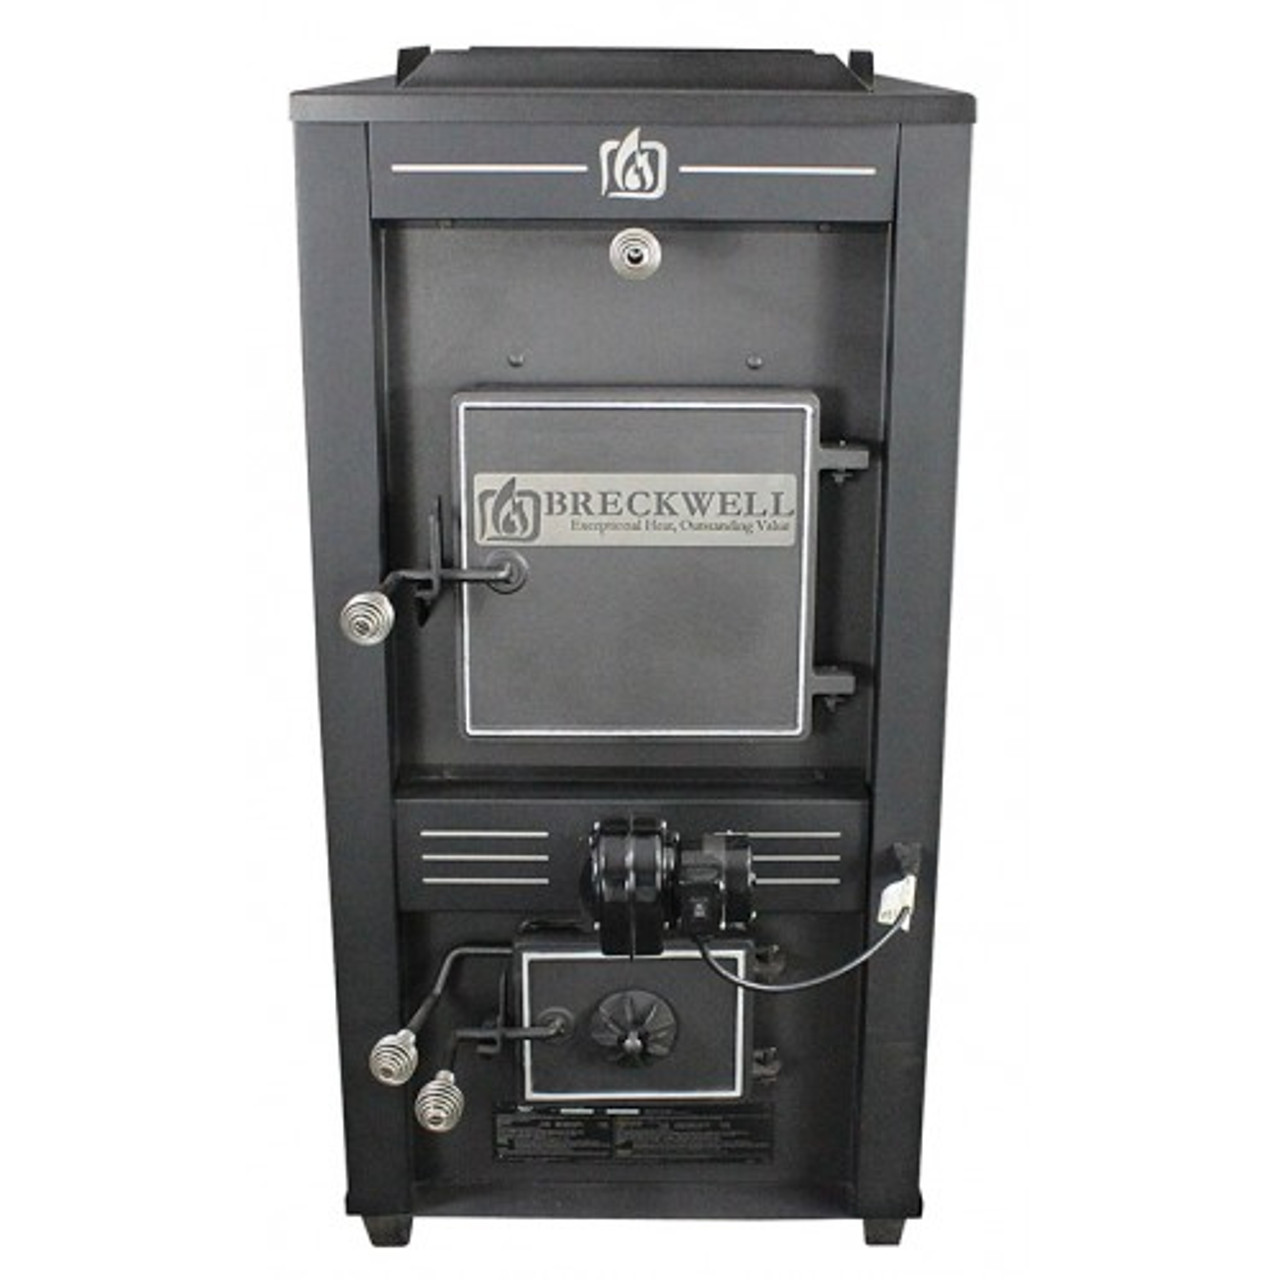 Breckwell SF747 Coal/Wood Furnace front